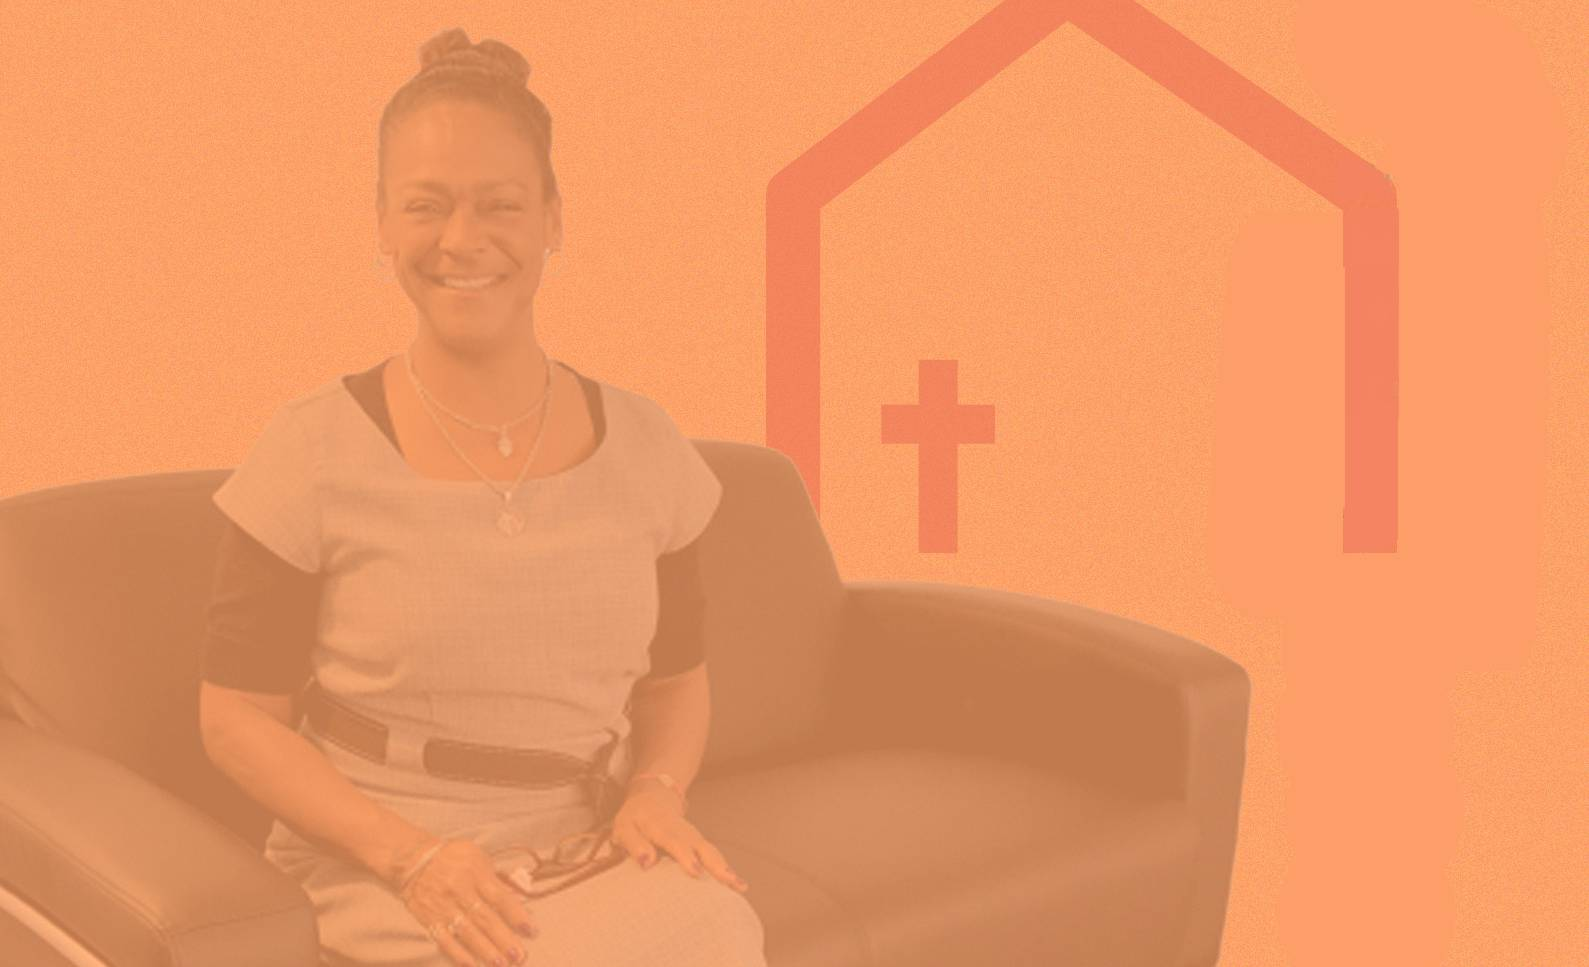 Woman sitting on chair smiling with Shelter KC icon behind her red tinted